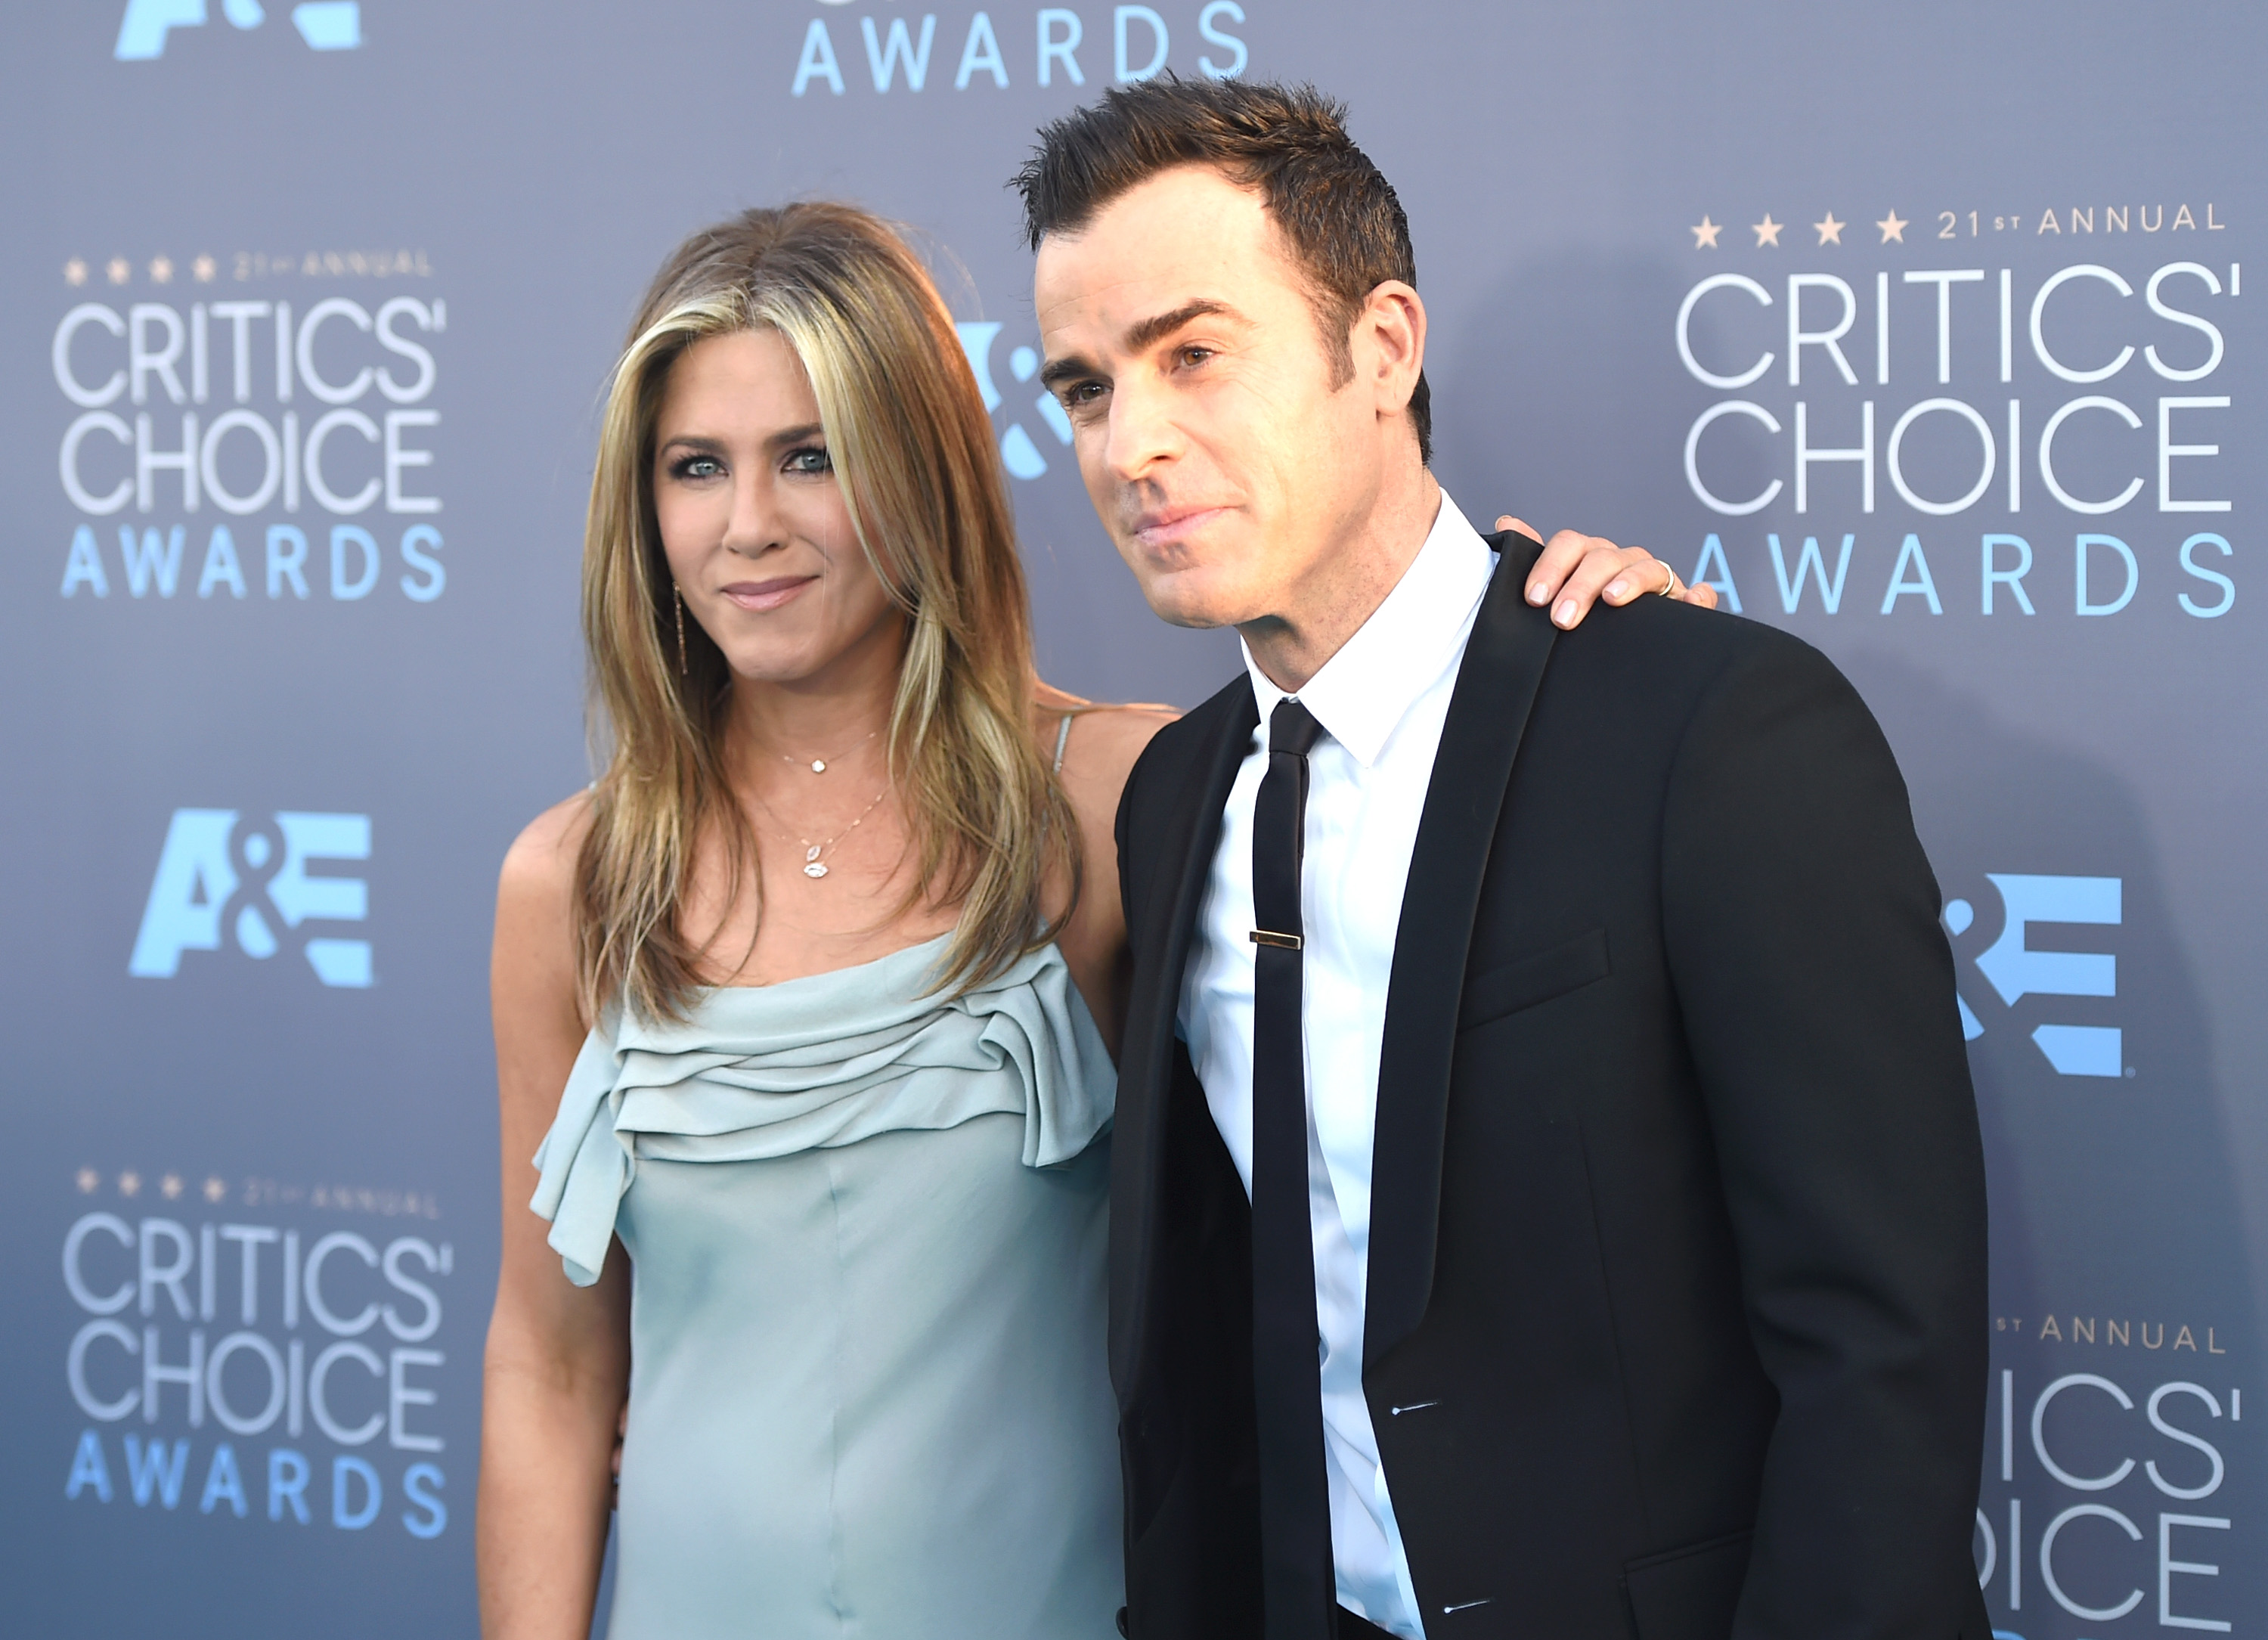 Actors Jennifer Aniston (L) and Justin Theroux attend the 21st Annual Critics' Choice Awards at Barker Hangar on January 17, 2016 in Santa Monica.